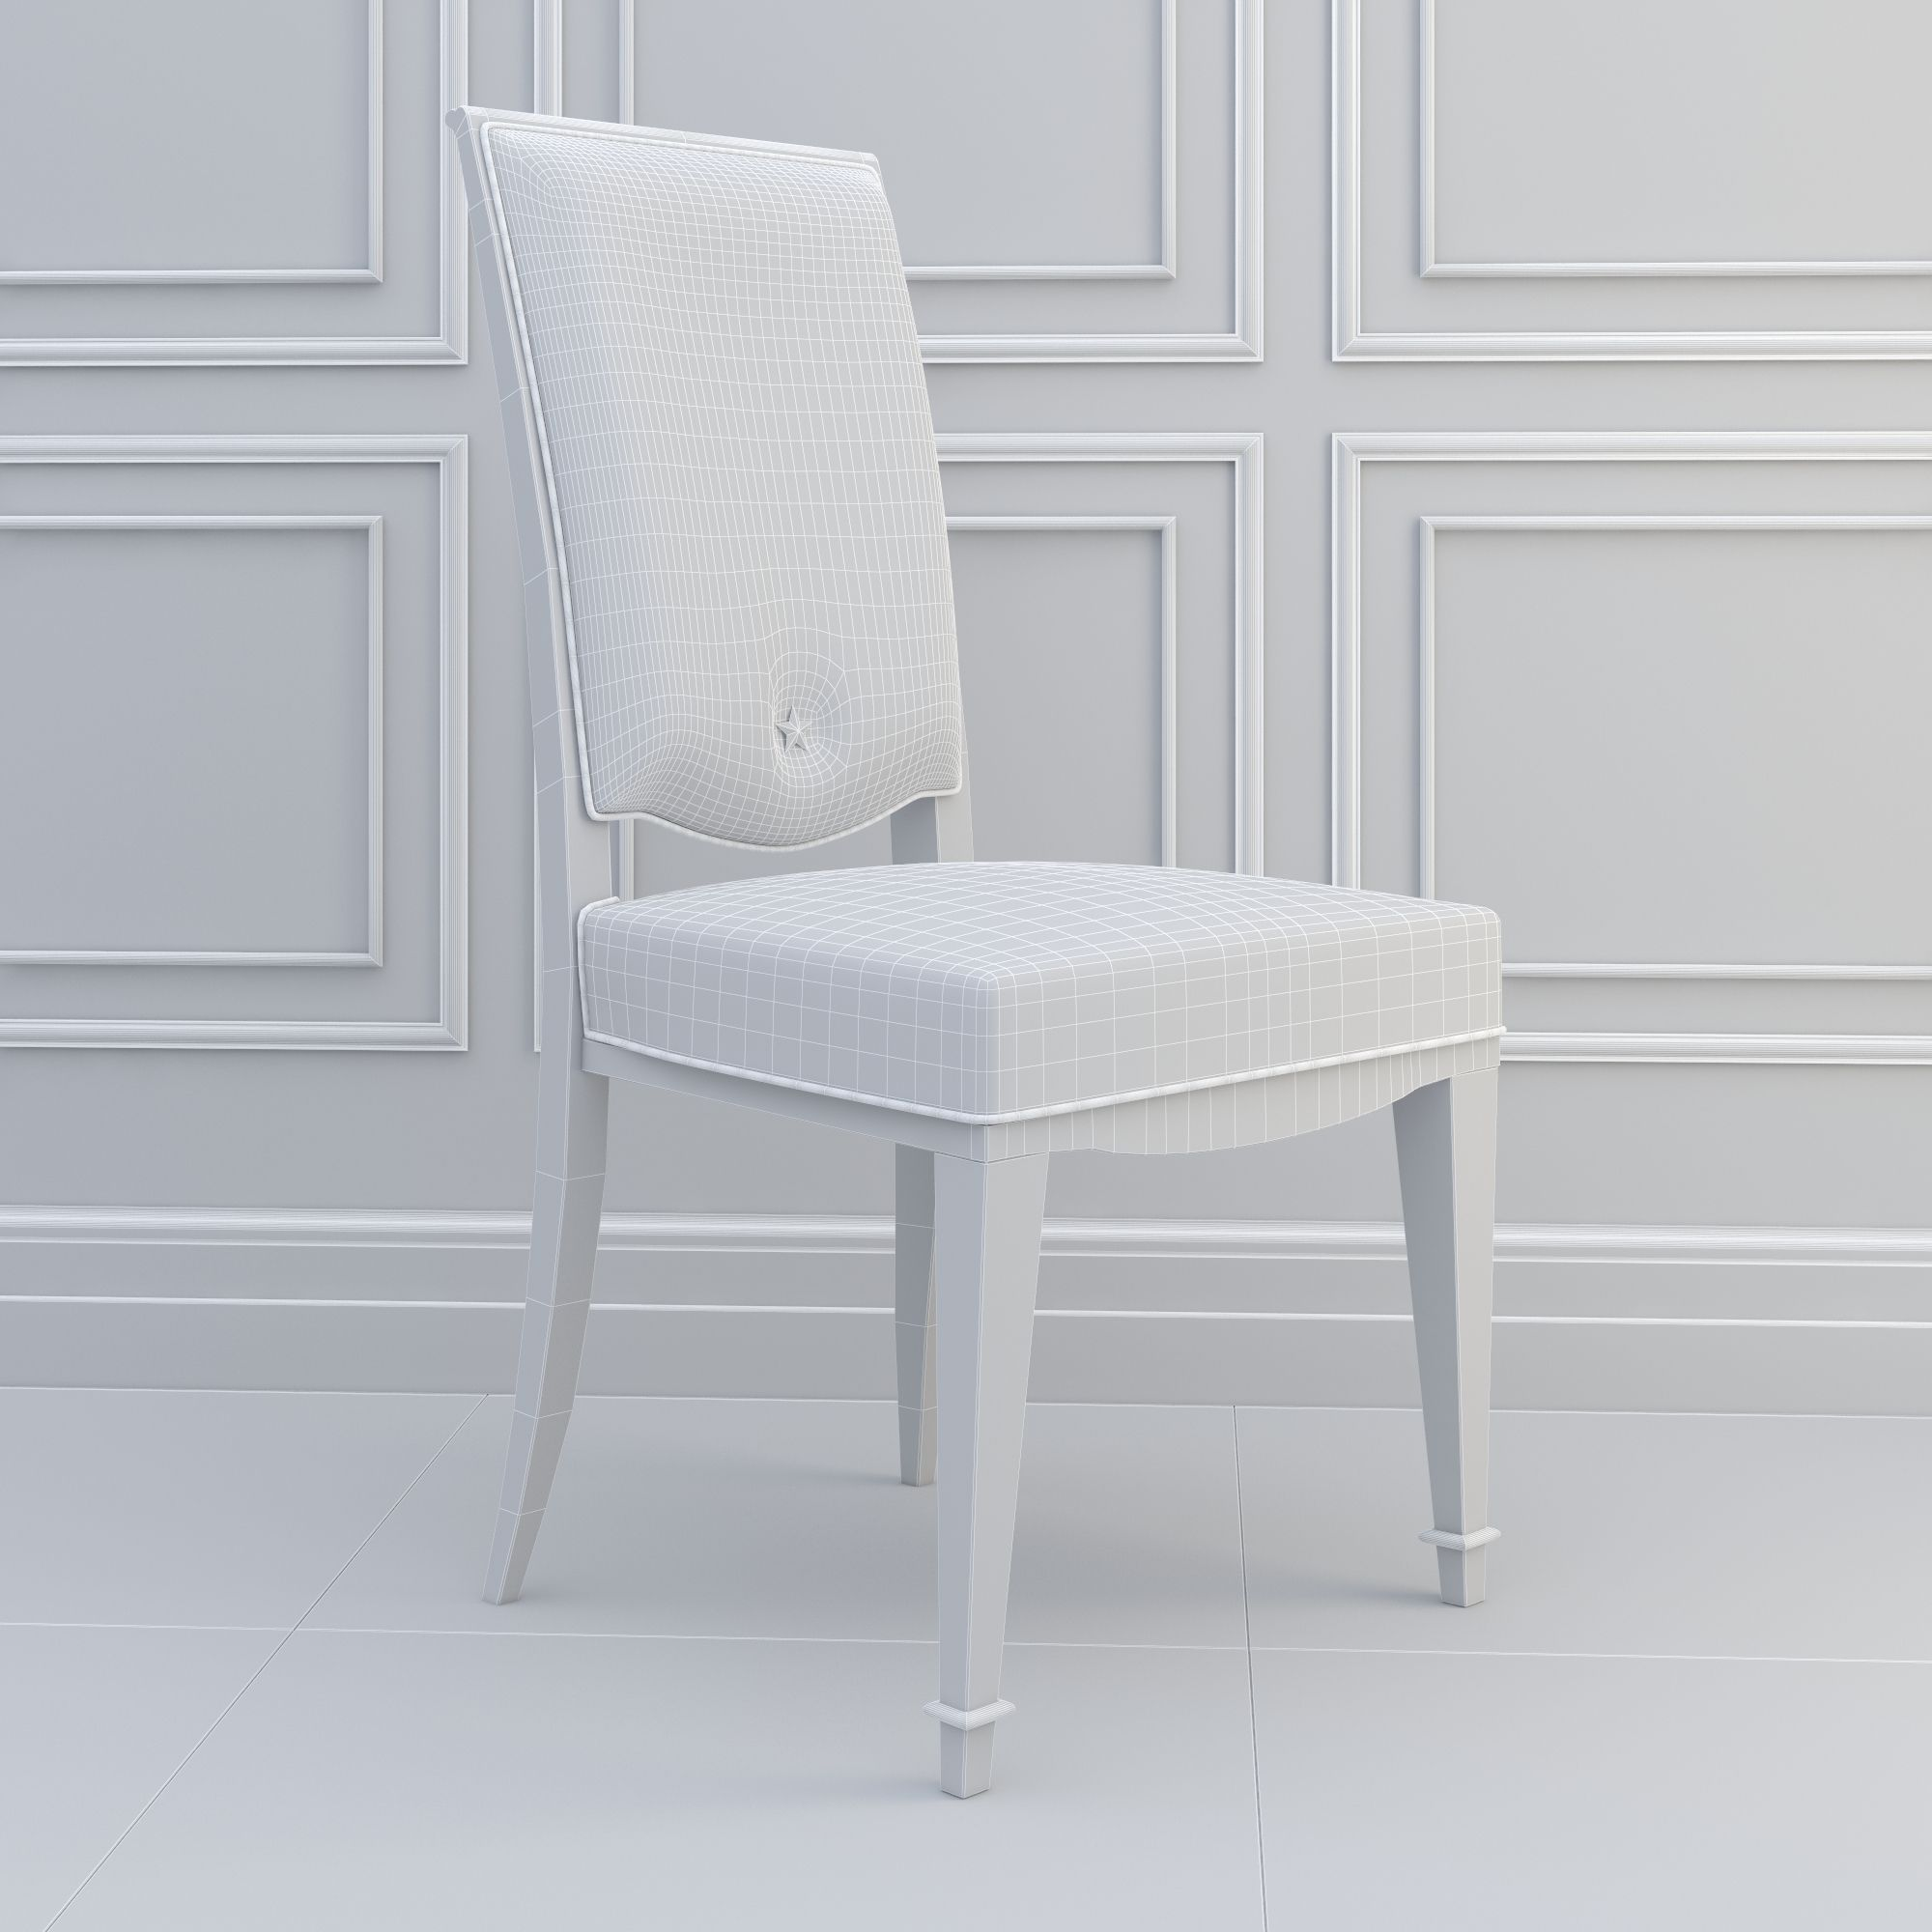 Elegant Dining Lam Lee Chair 3d Model Max Fbx